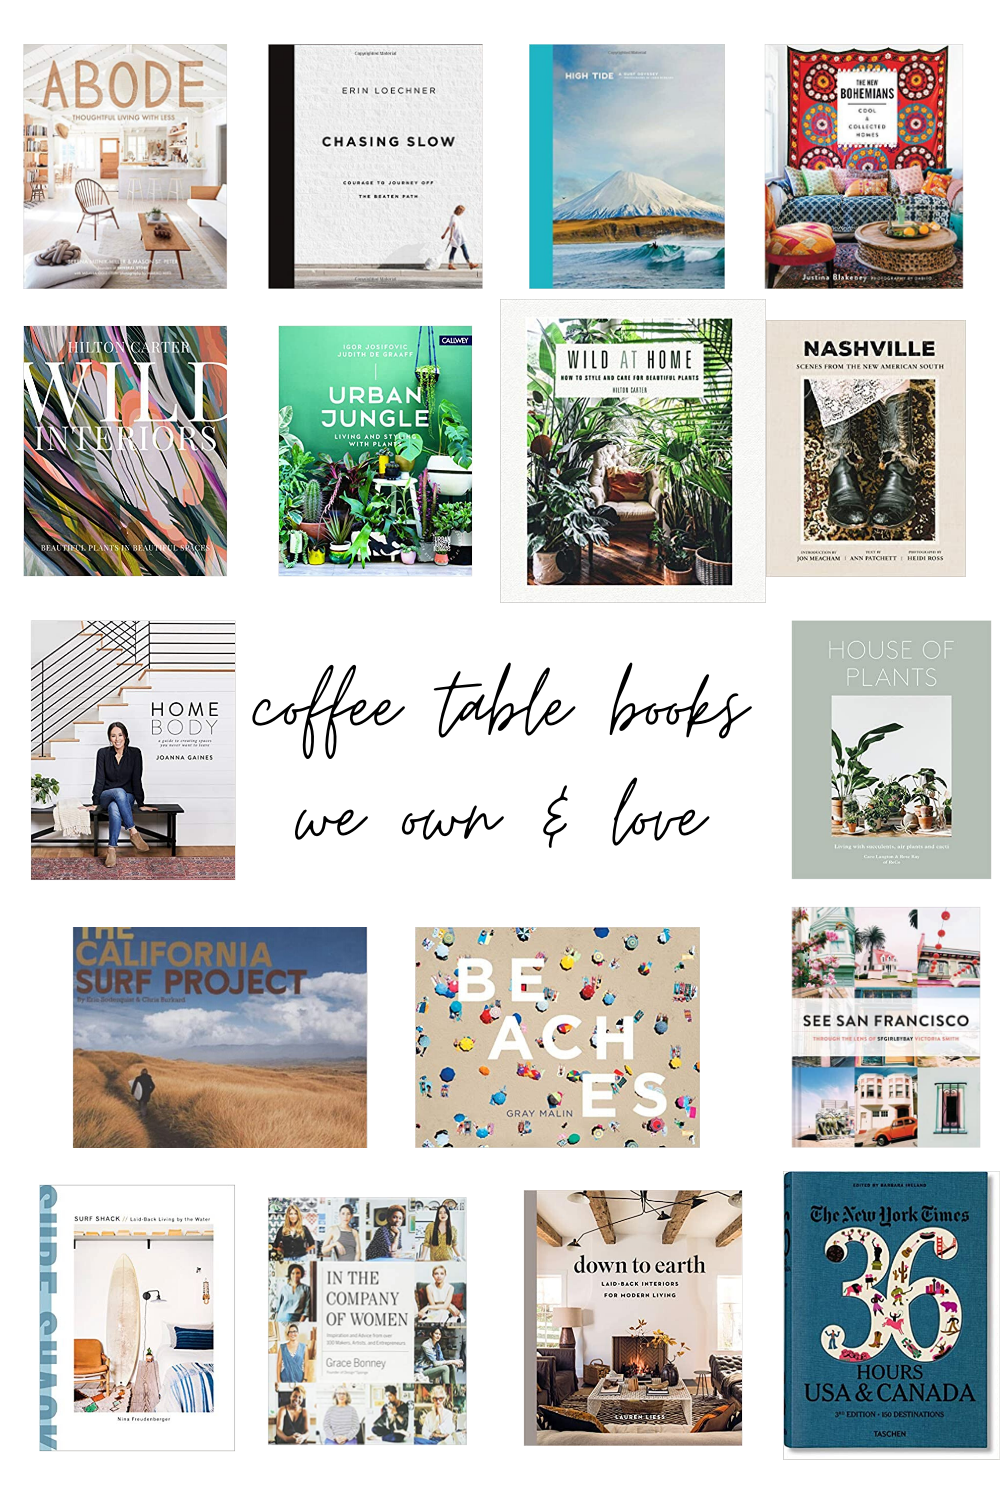 coffee table books we own & love